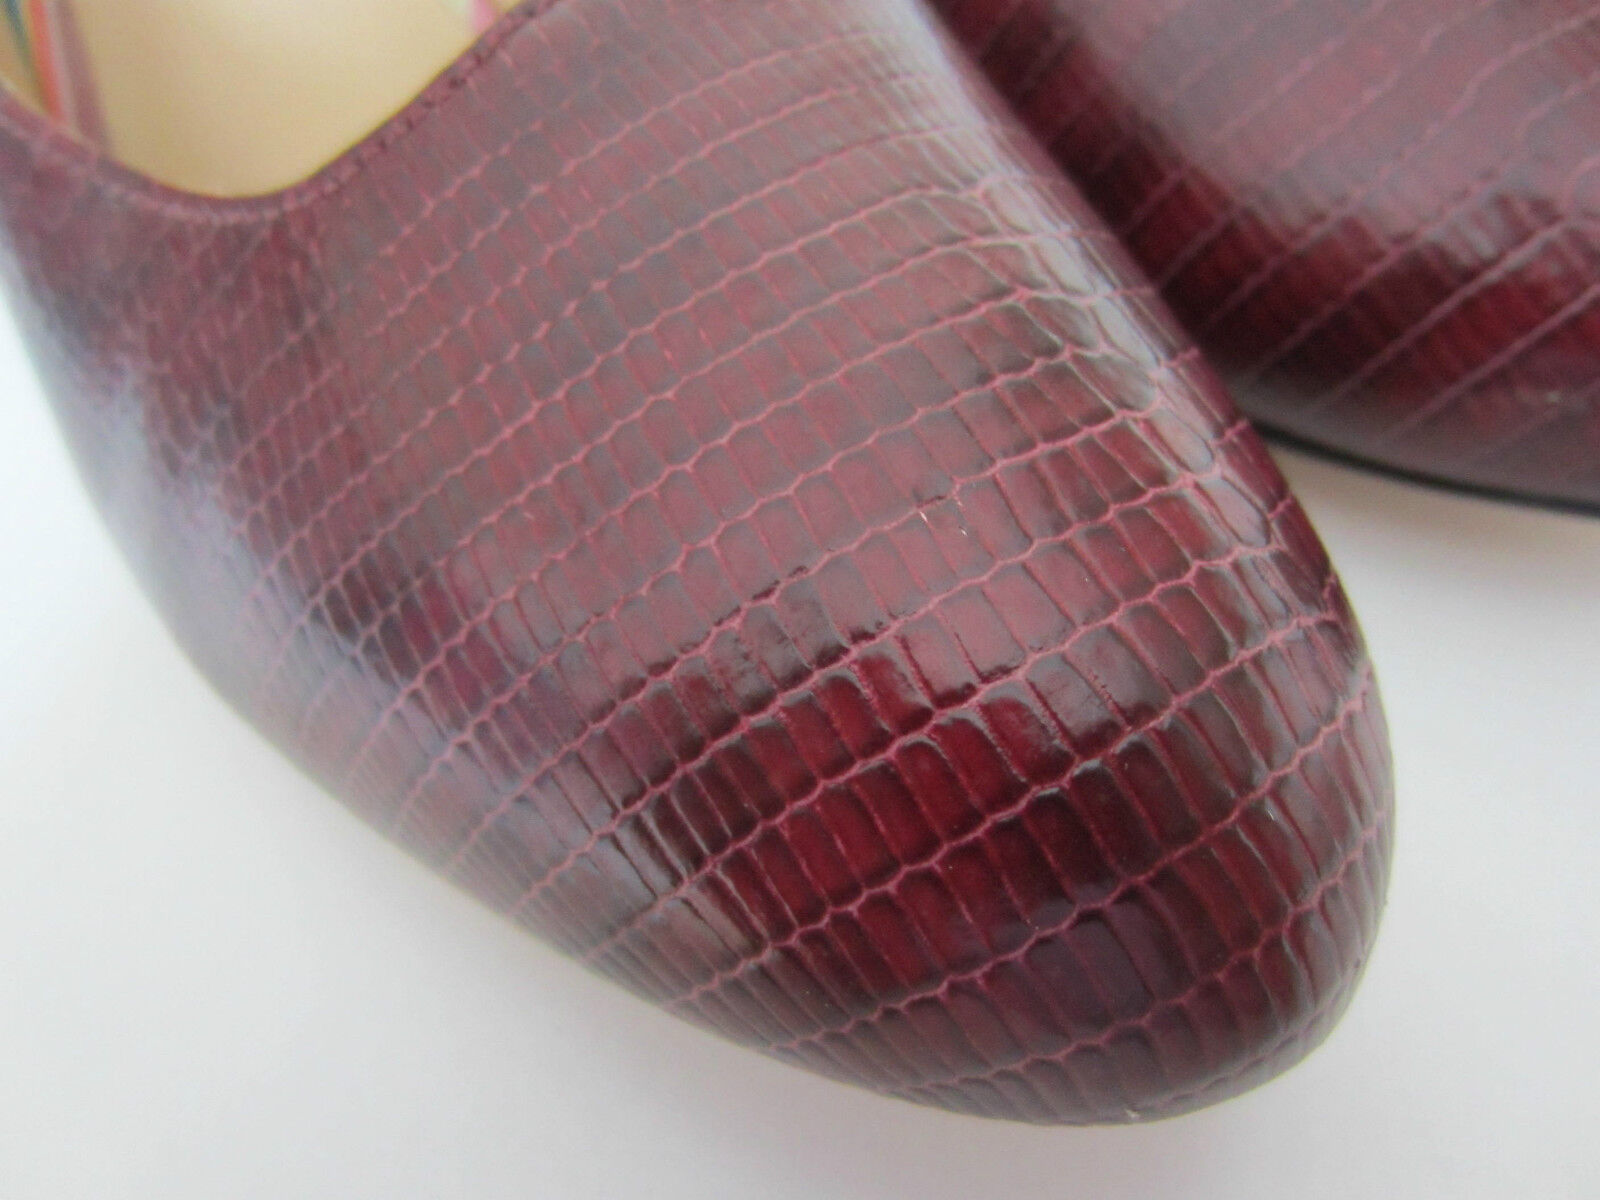 Paul Smith Court Skin Shoes Wine Red Reptile Skin Court ALL LEATHER 3.5